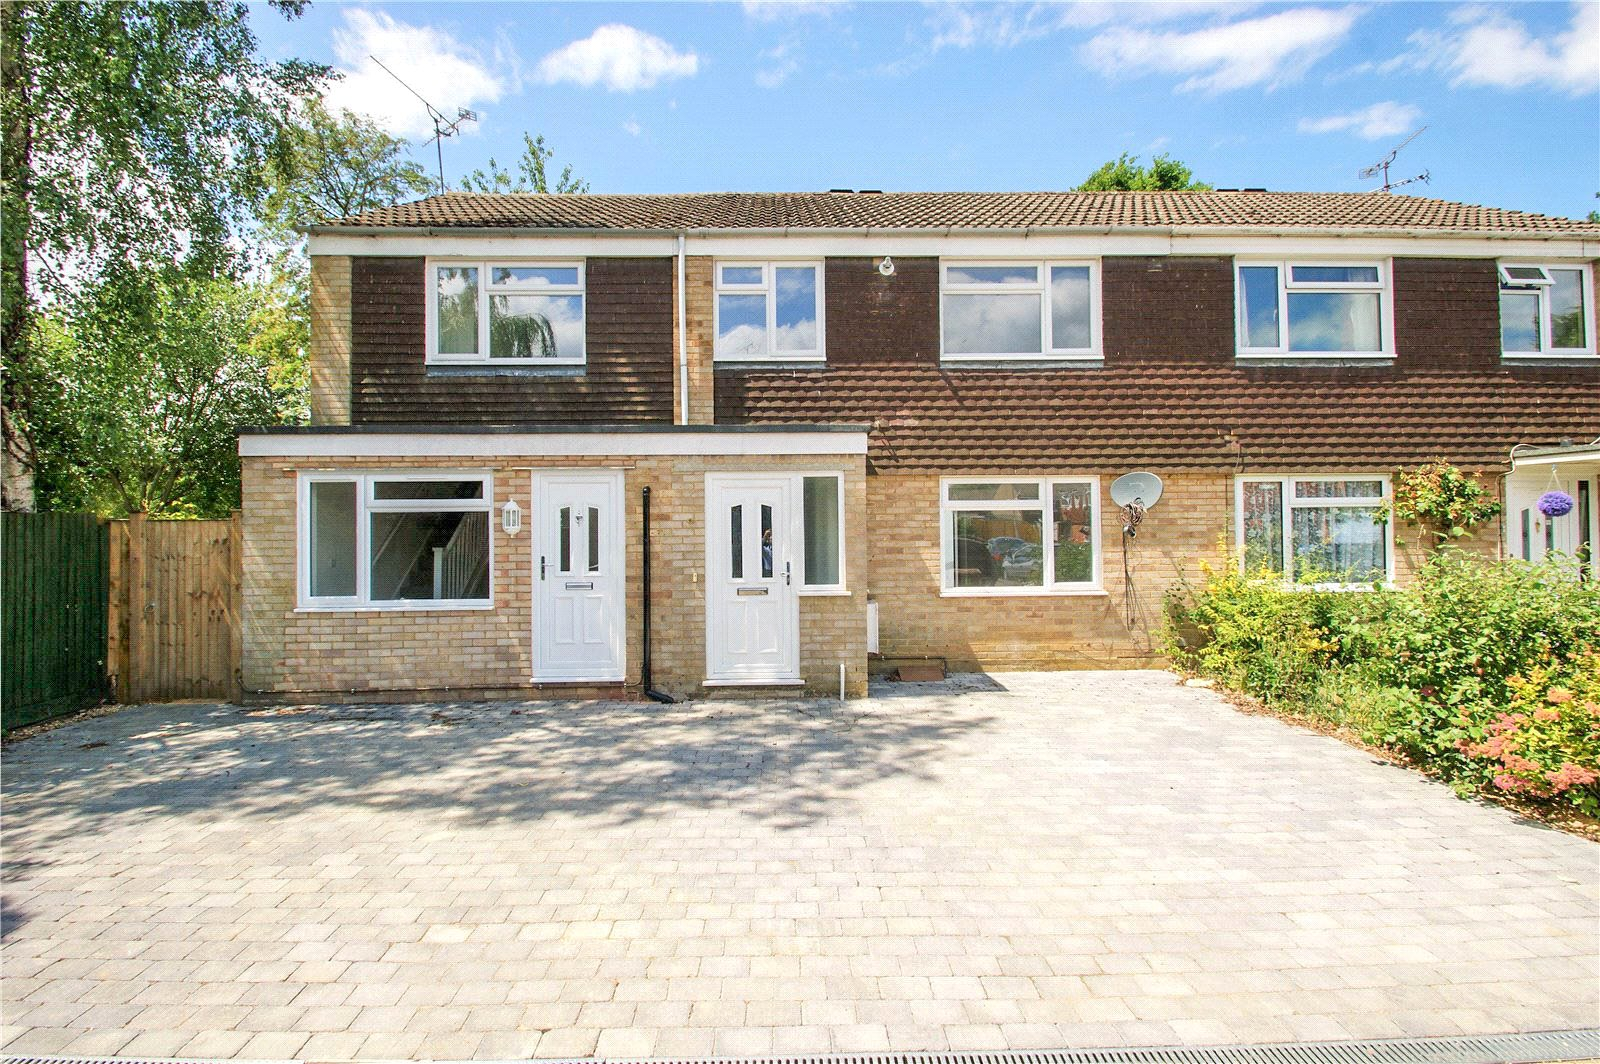 3 Bedrooms Terraced House for sale in Hutsons Close, Wokingham, Berkshire, RG40